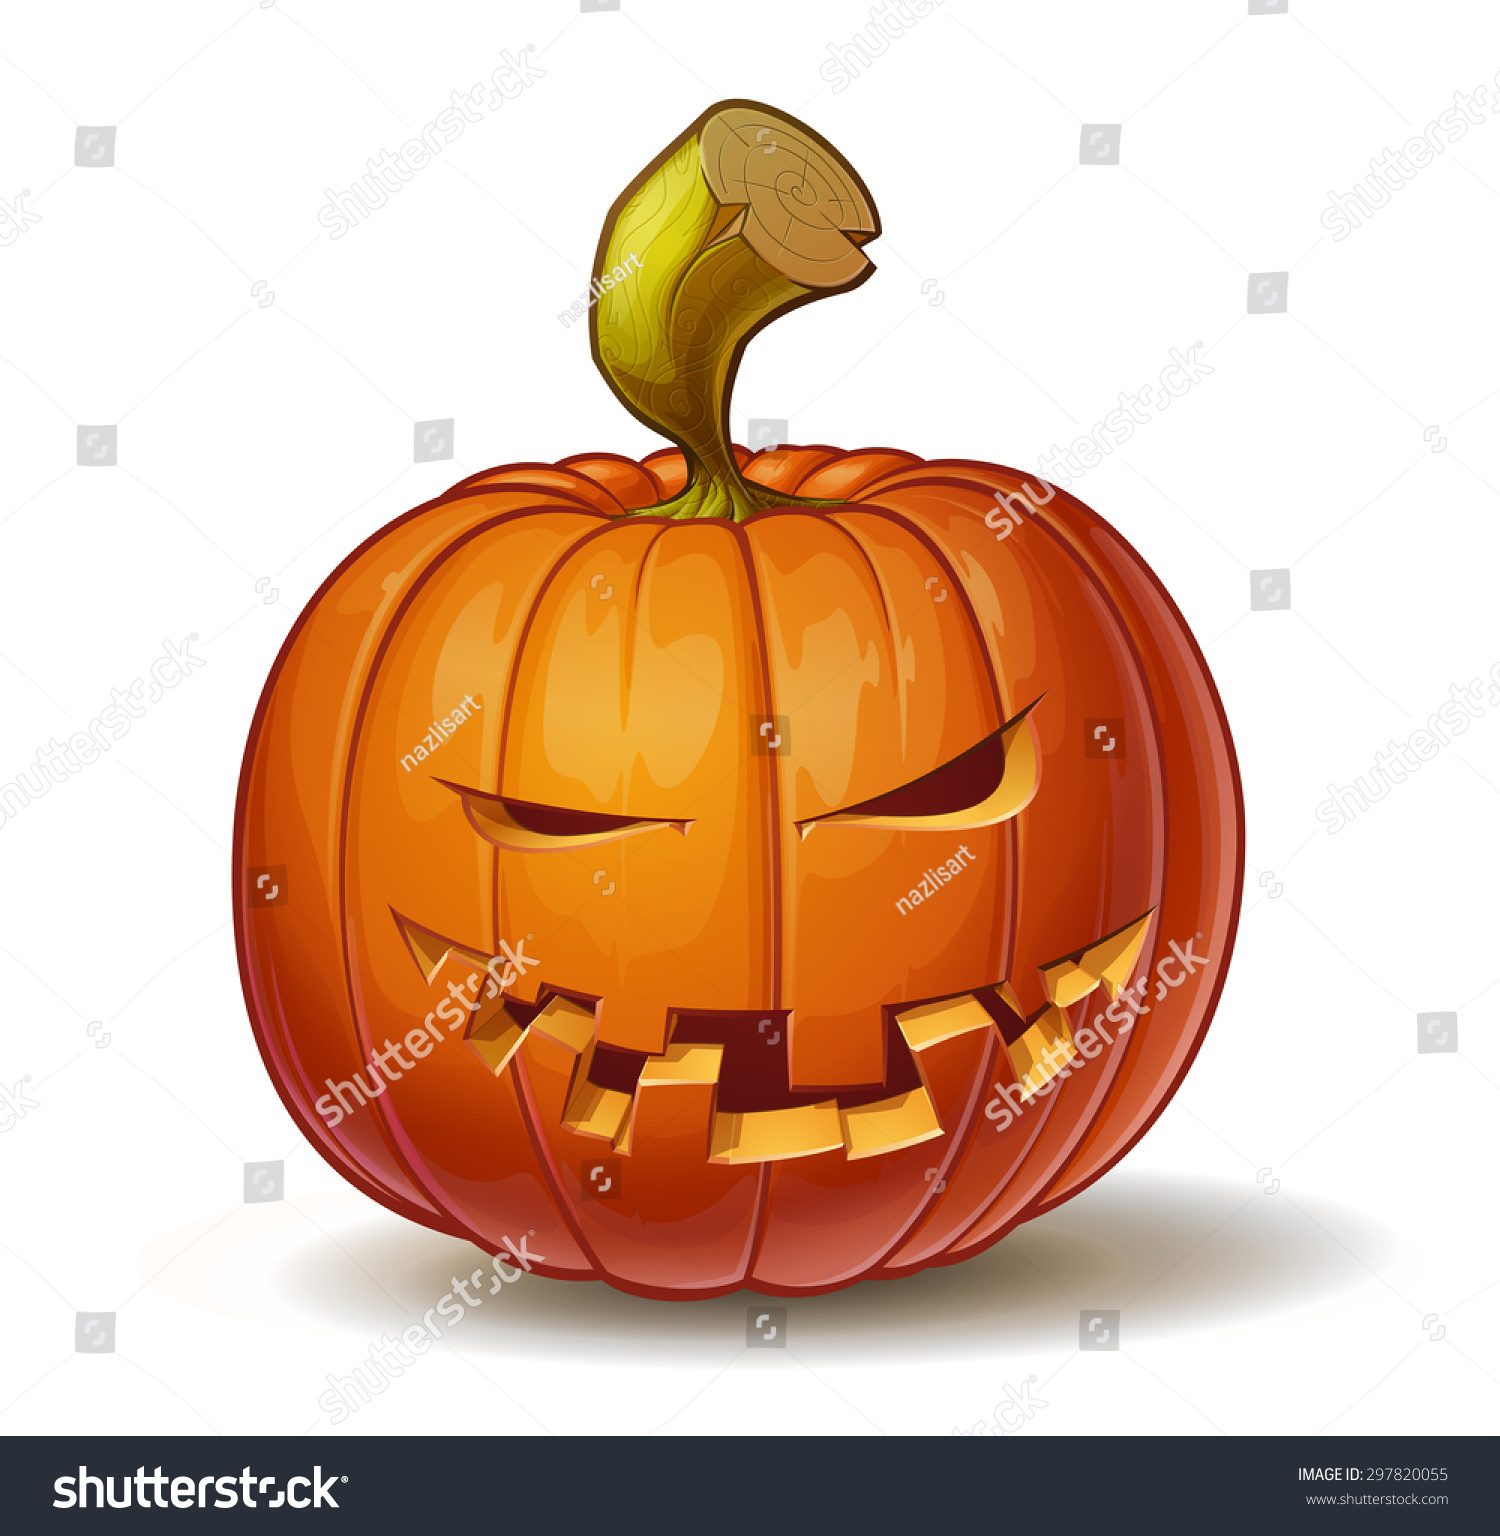 Cartoon Vector Illustration Of A Jack O Lantern Pumpkin Curved In A Mean Expression Isolated On